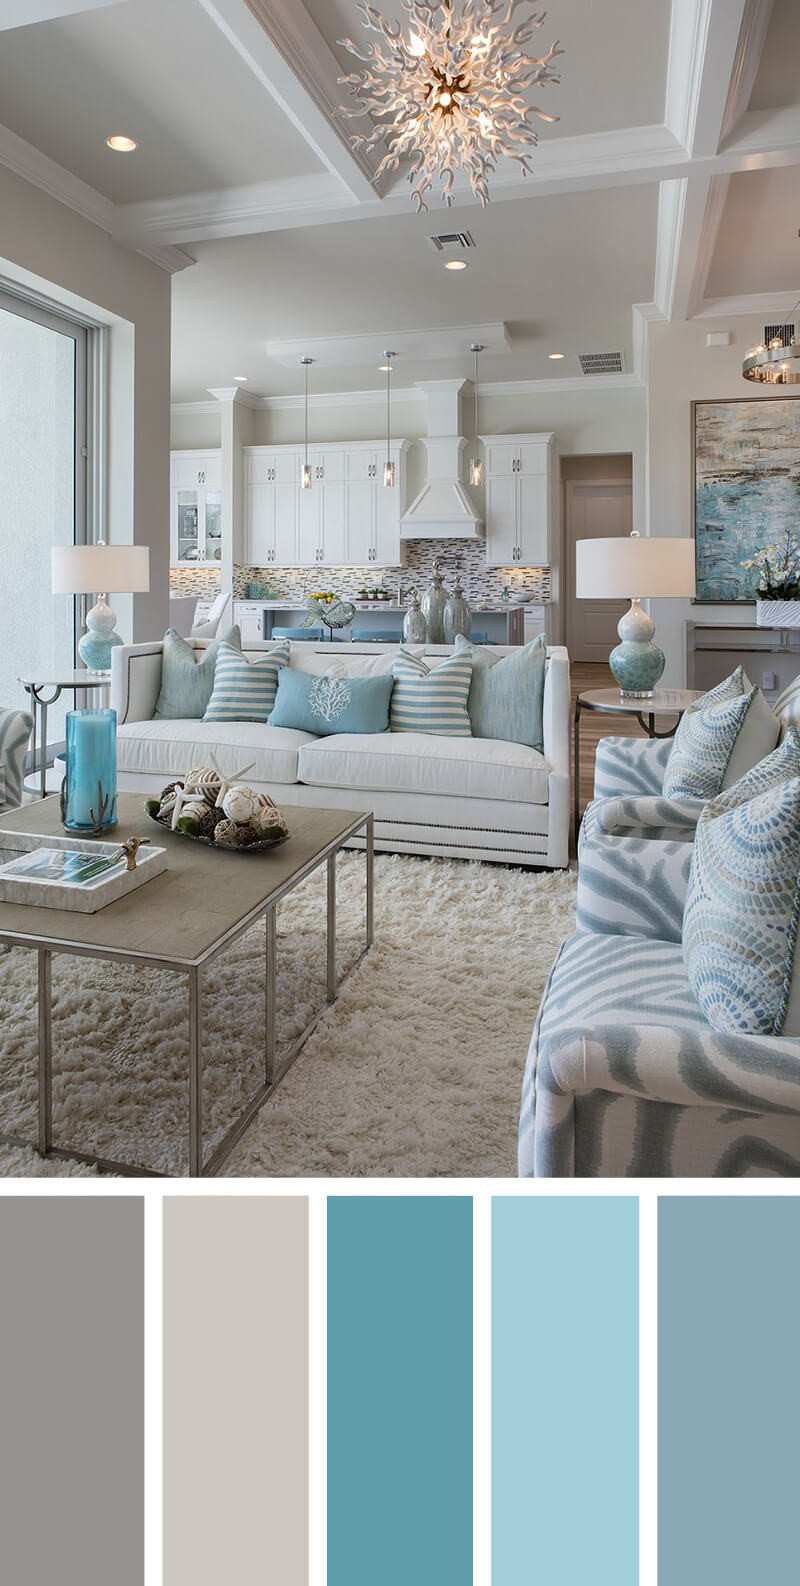 Best ideas about Best Living Room Colors . Save or Pin 21 Cozy Living Room Paint Colors Ideas for 2019 Now.